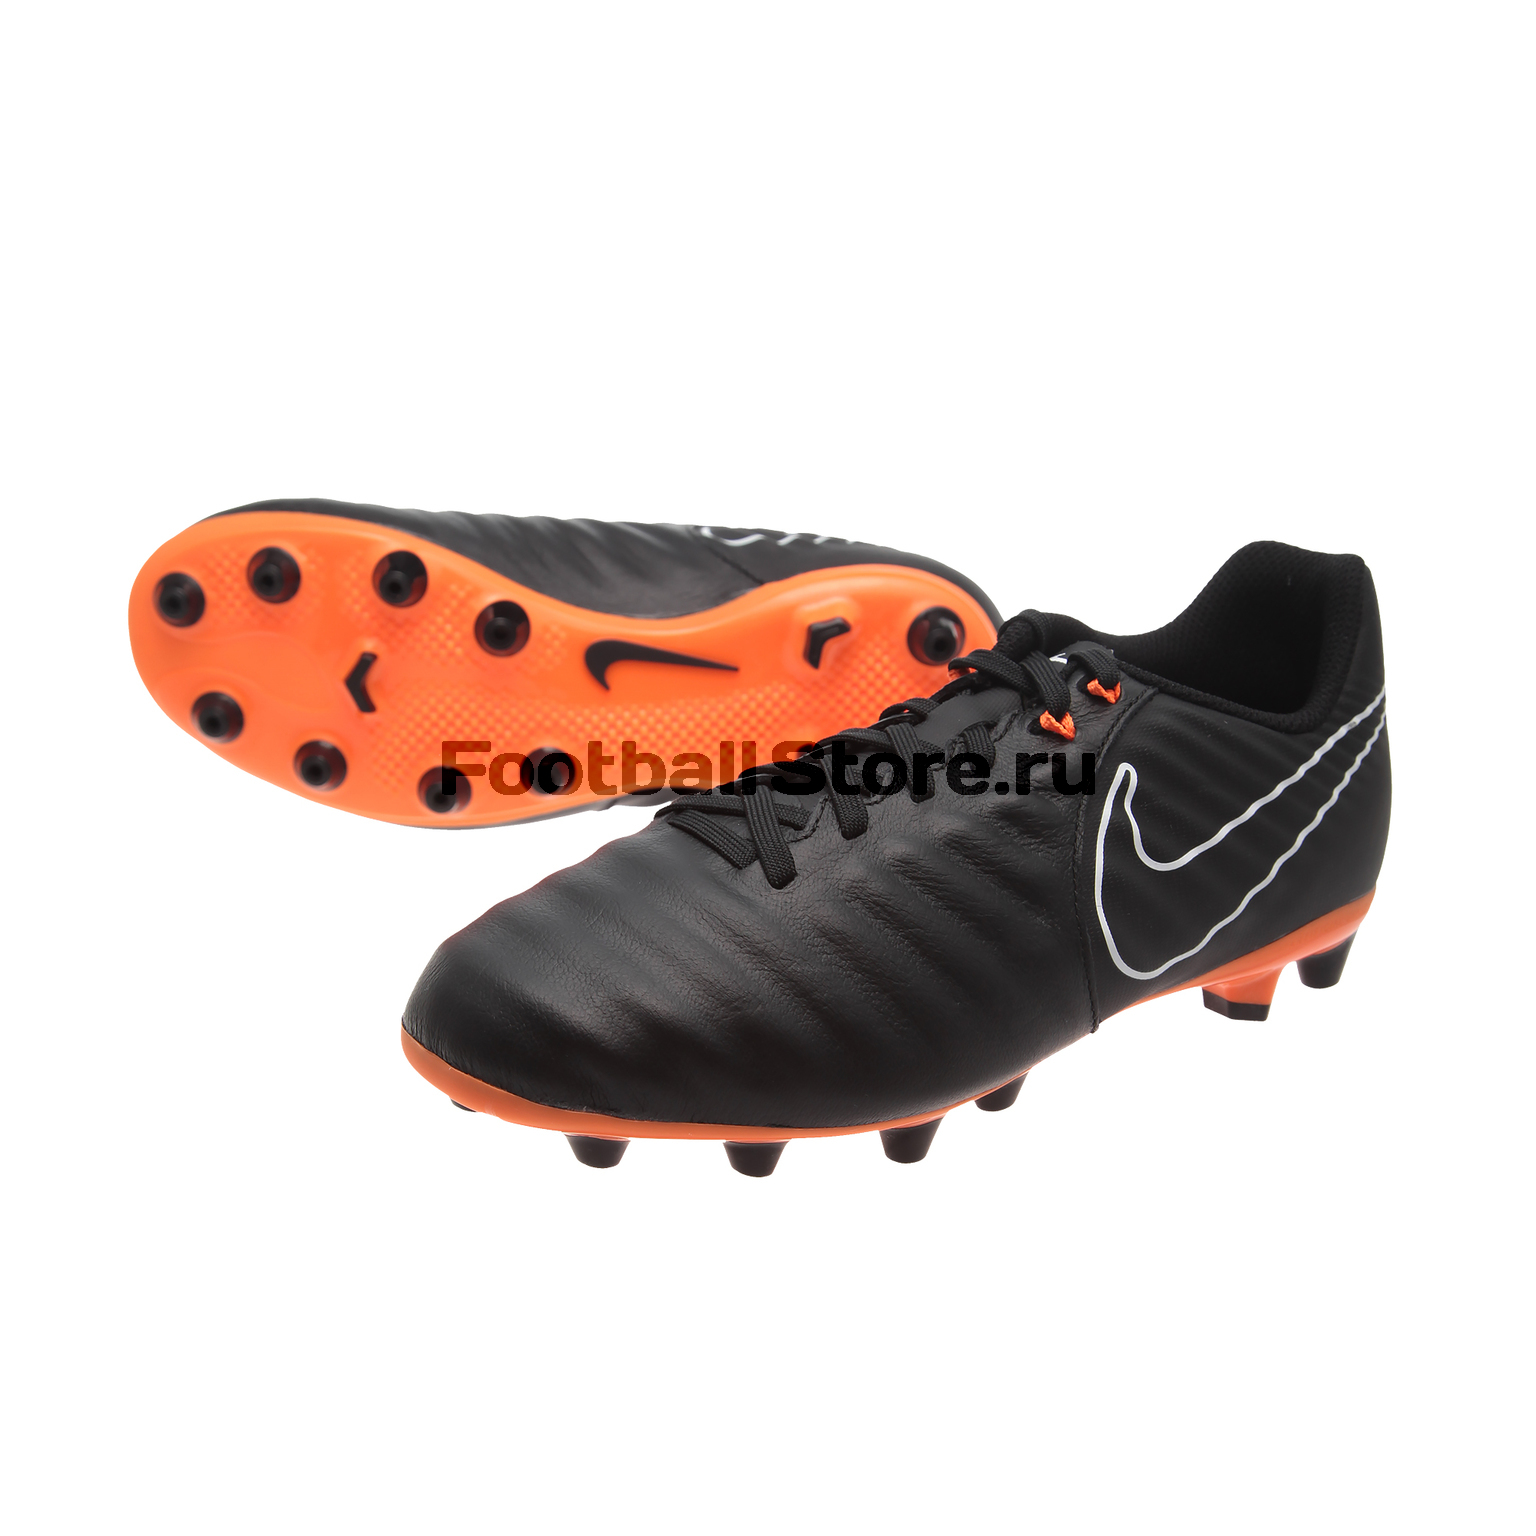 Бутсы Nike JR Legend 7 Academy AG-PRO AH8807-080 бутсы nike шиповки nike jr tiempox legend vi tf 819191 018